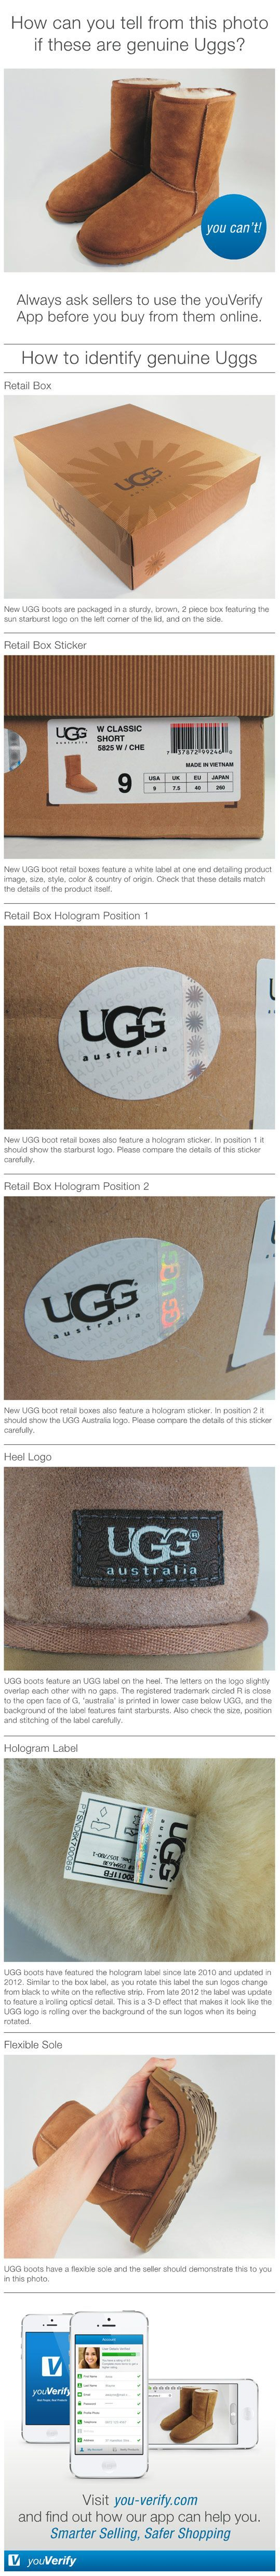 How to identify genuine Ugg Boots by youVerify